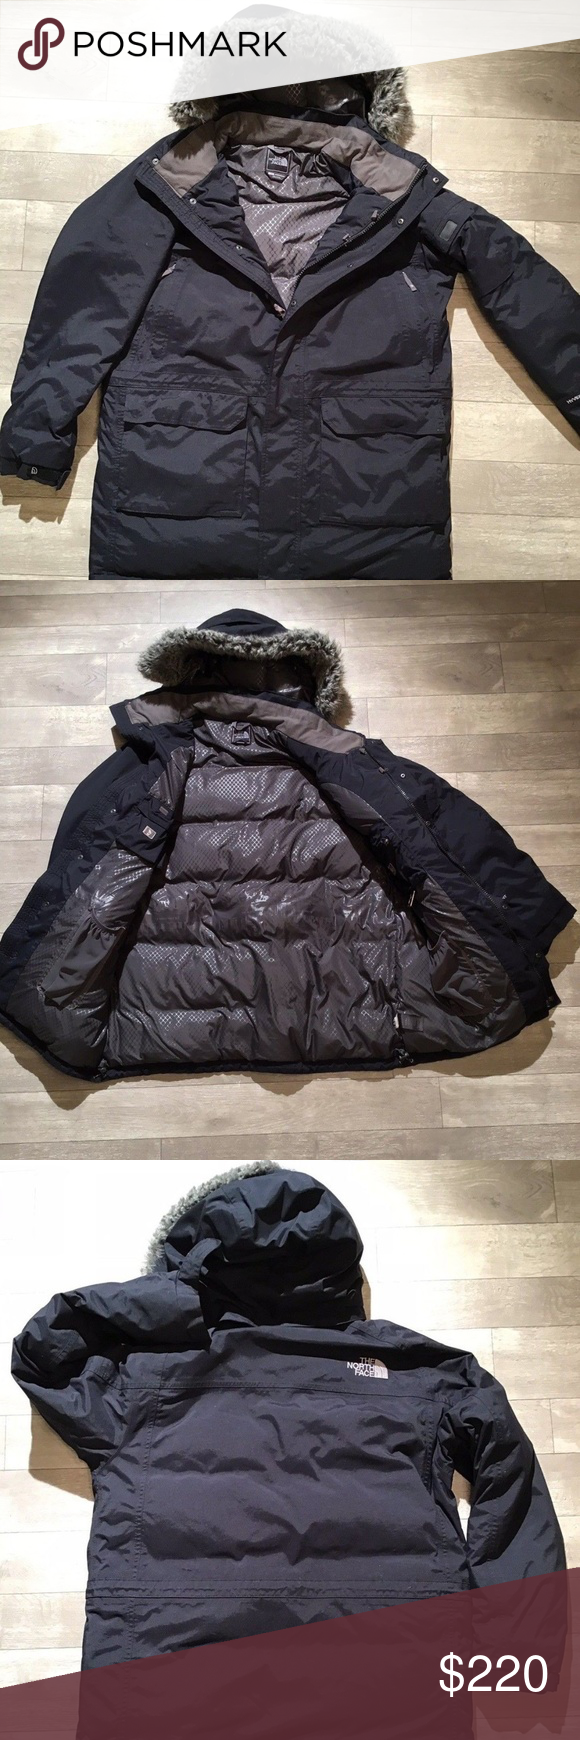 The North Face Hyvent Goose Down Jacket Parka Coat Jacket Parka Parka Coat Down Jacket [ 1740 x 580 Pixel ]